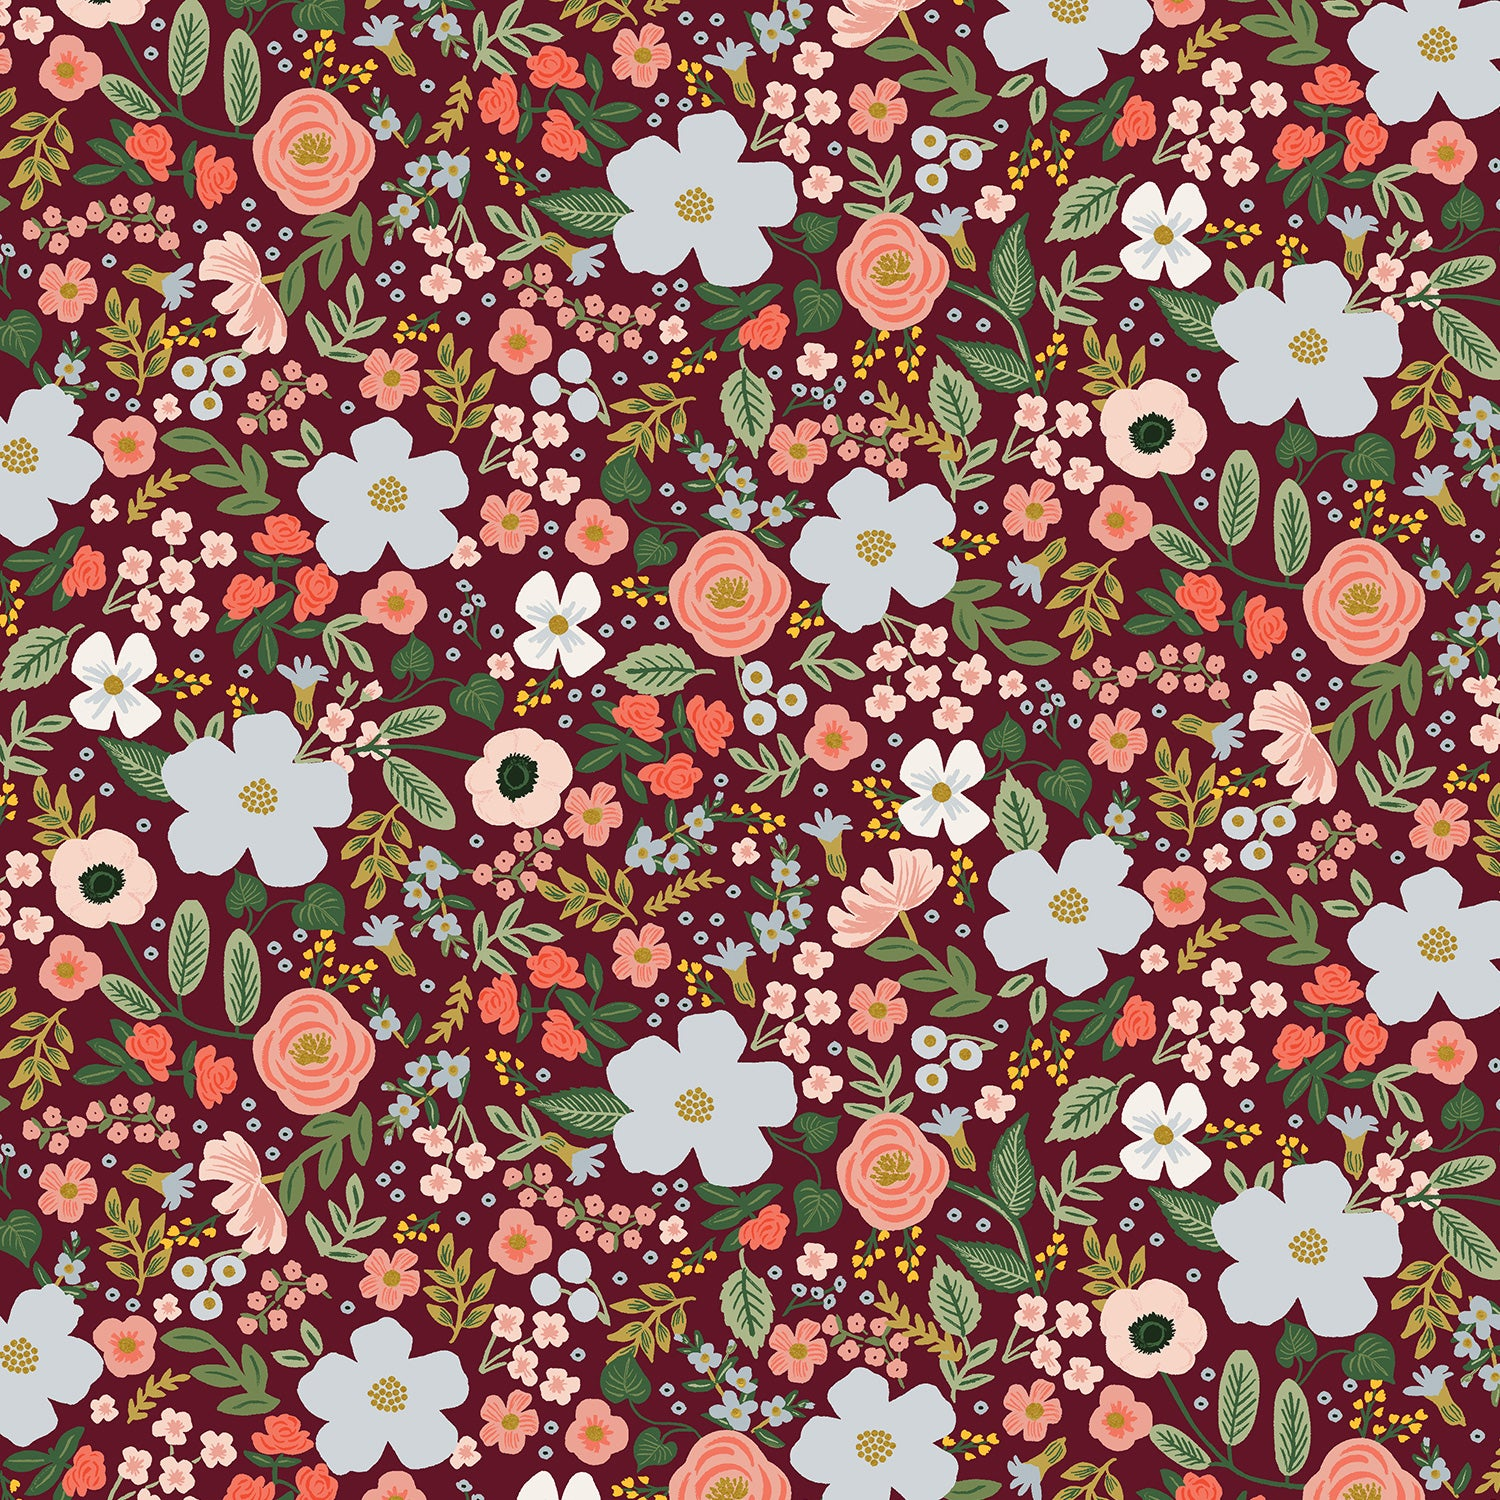 Manufacturer: Cotton and Steel Designer: Rifle Paper Co. Collection: Garden Party Print Name: Wild Rose in Burgundy Metallic Material: 100% Cotton  Weight: Quilting  SKU: RP303-BU5M Width: 44 inches